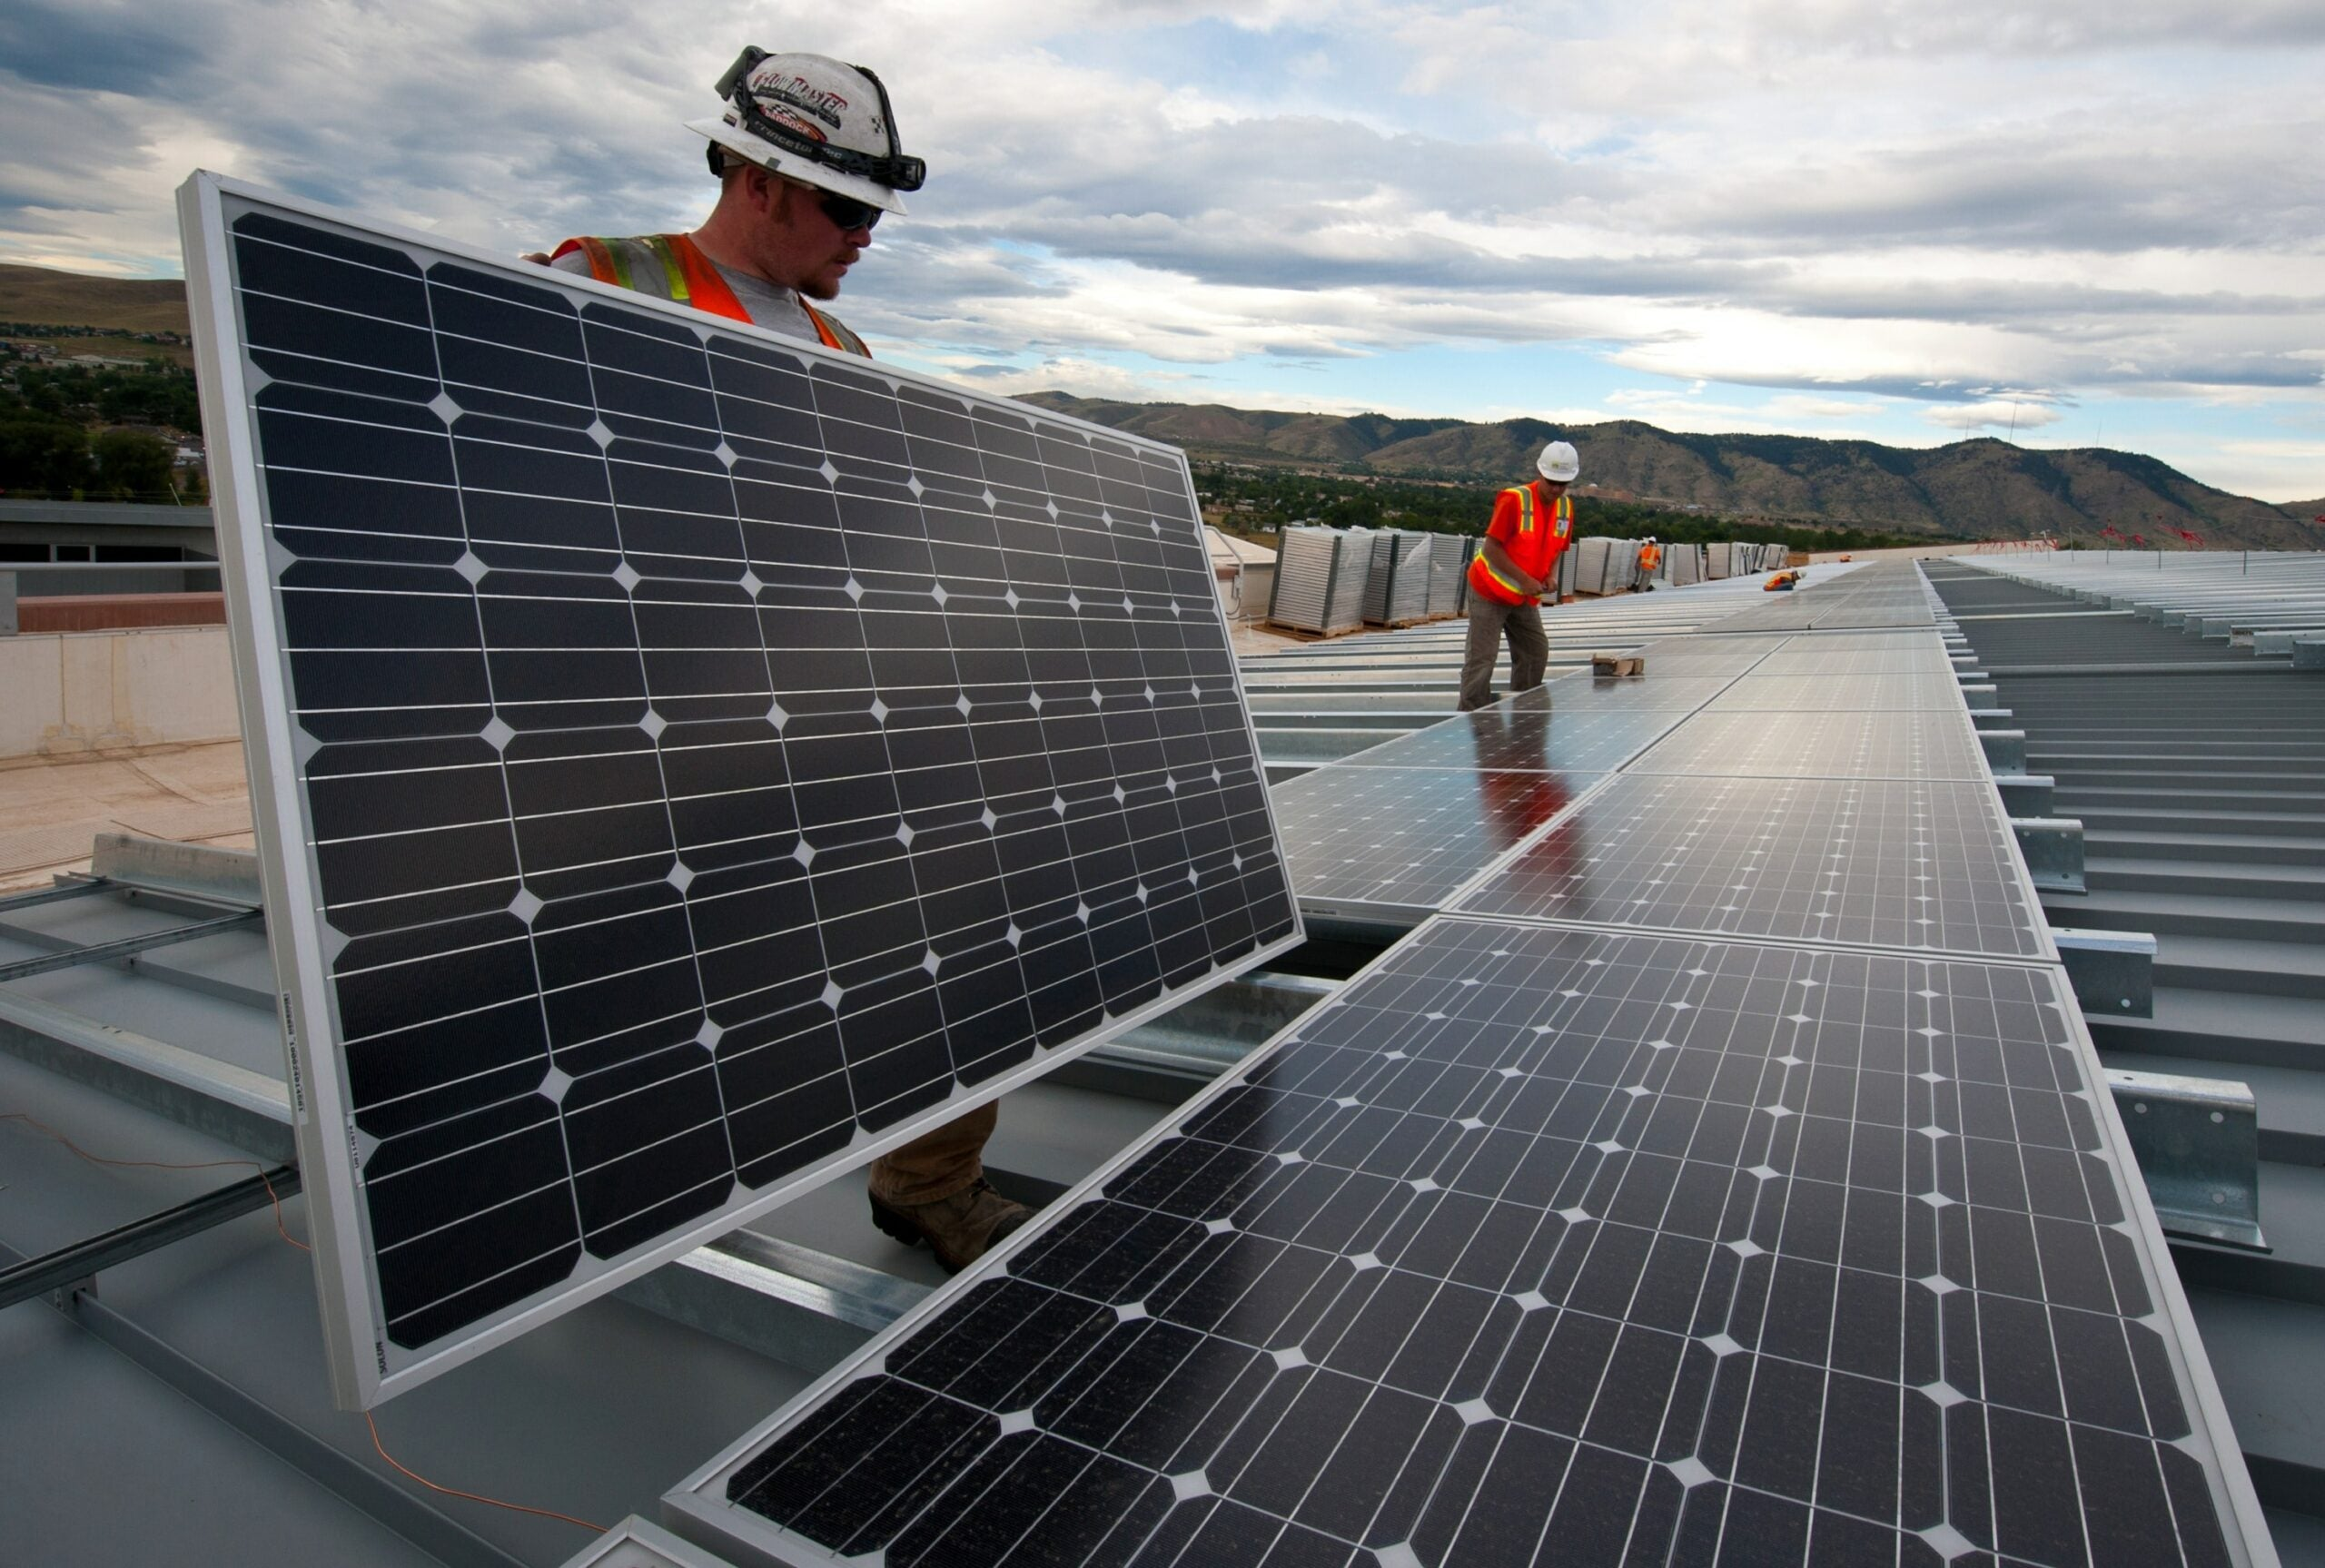 Construction workers install solar panles.